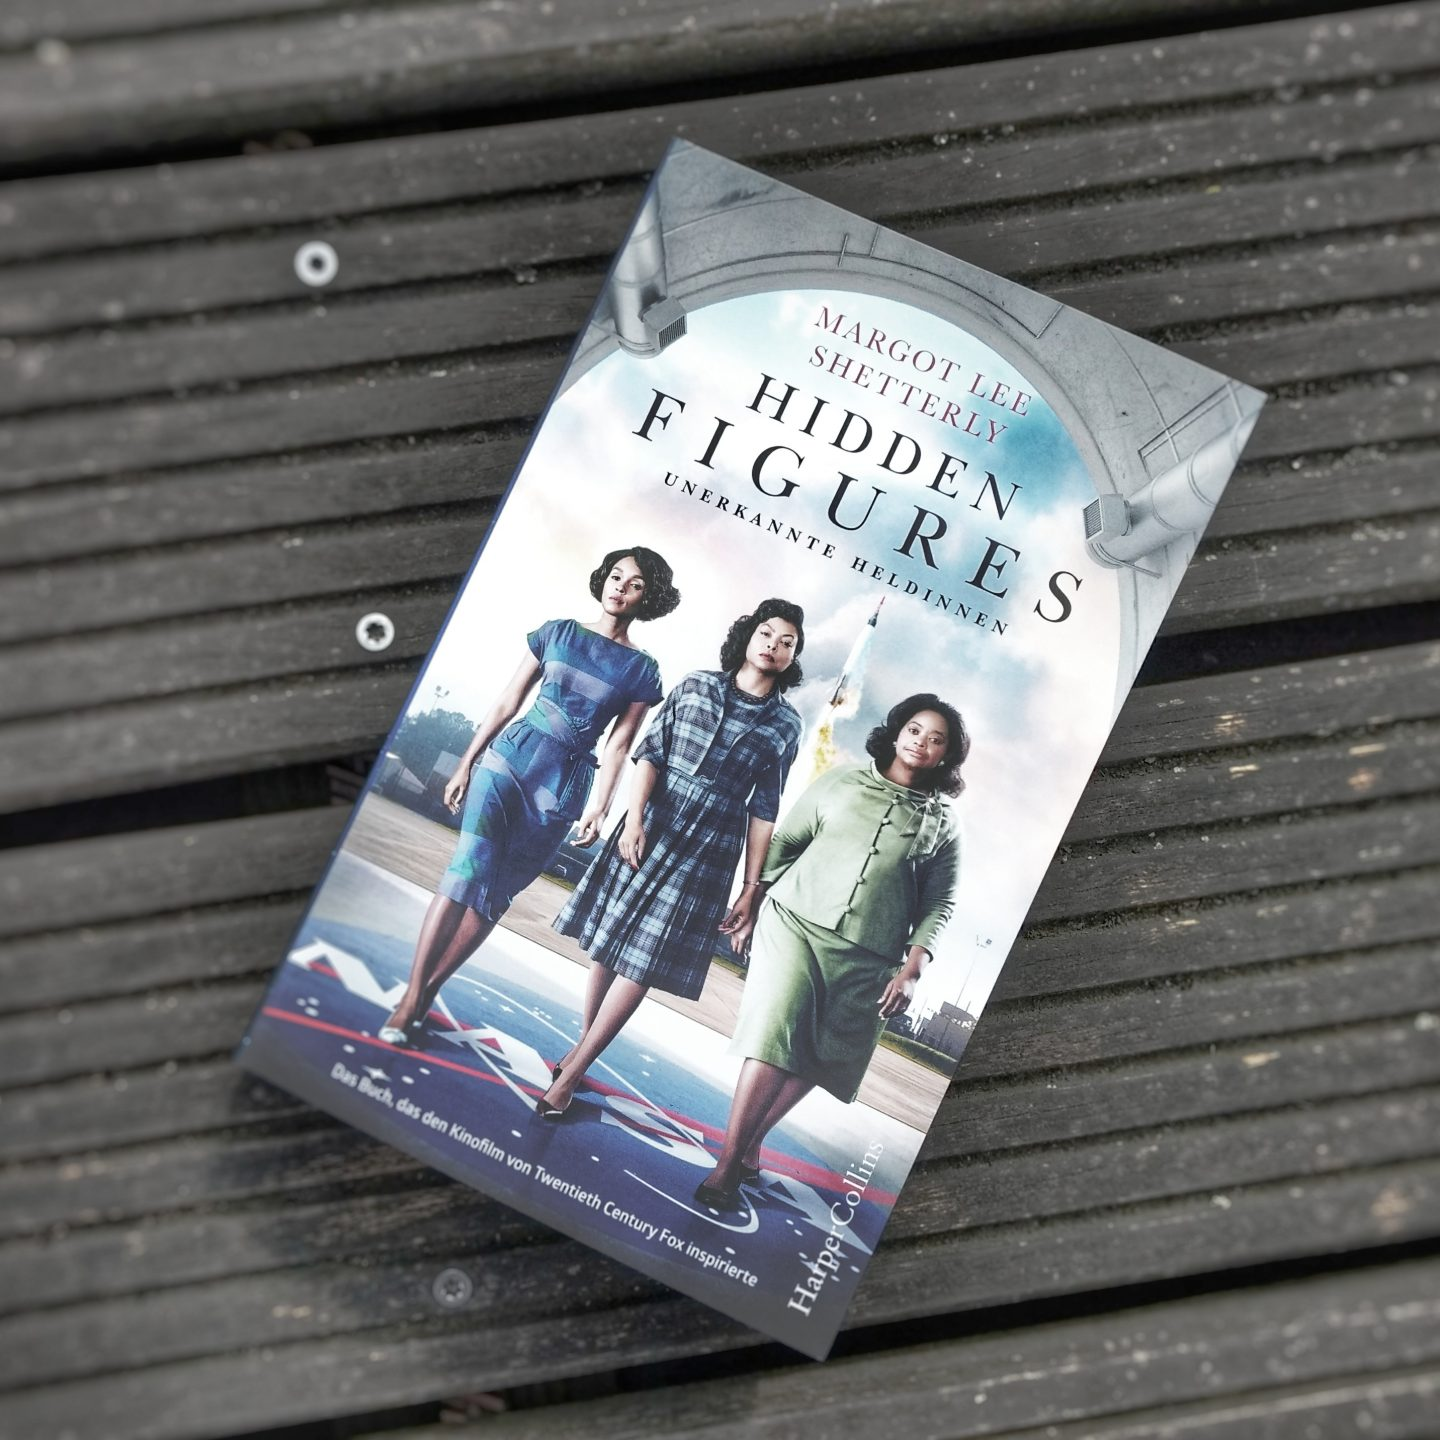 Hidden Figures – Margot Lee Shetterly